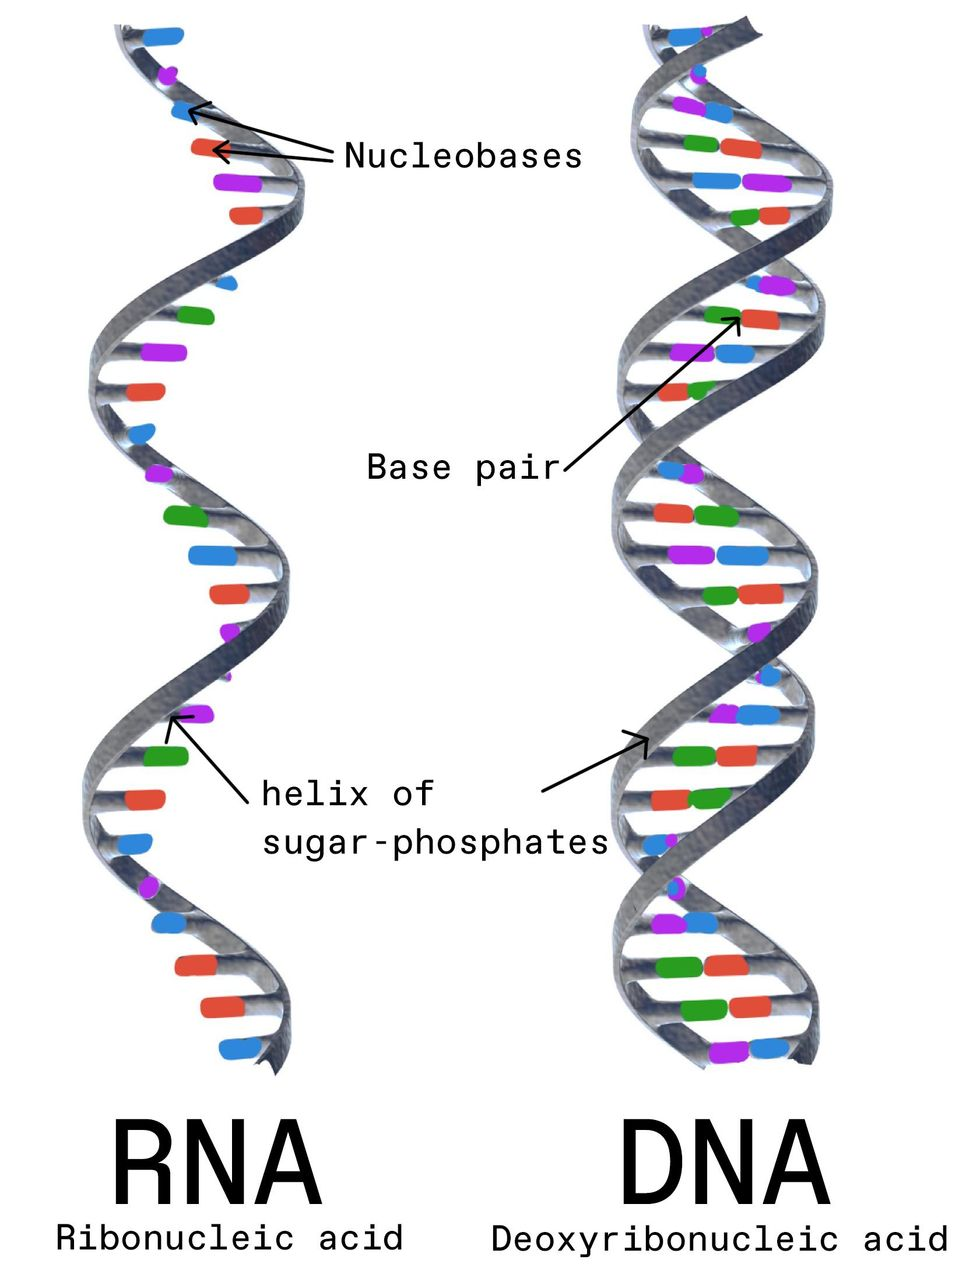 Two illustrations show the structure of a single-stranded RNA molecule and a double-stranded DNA molecule.